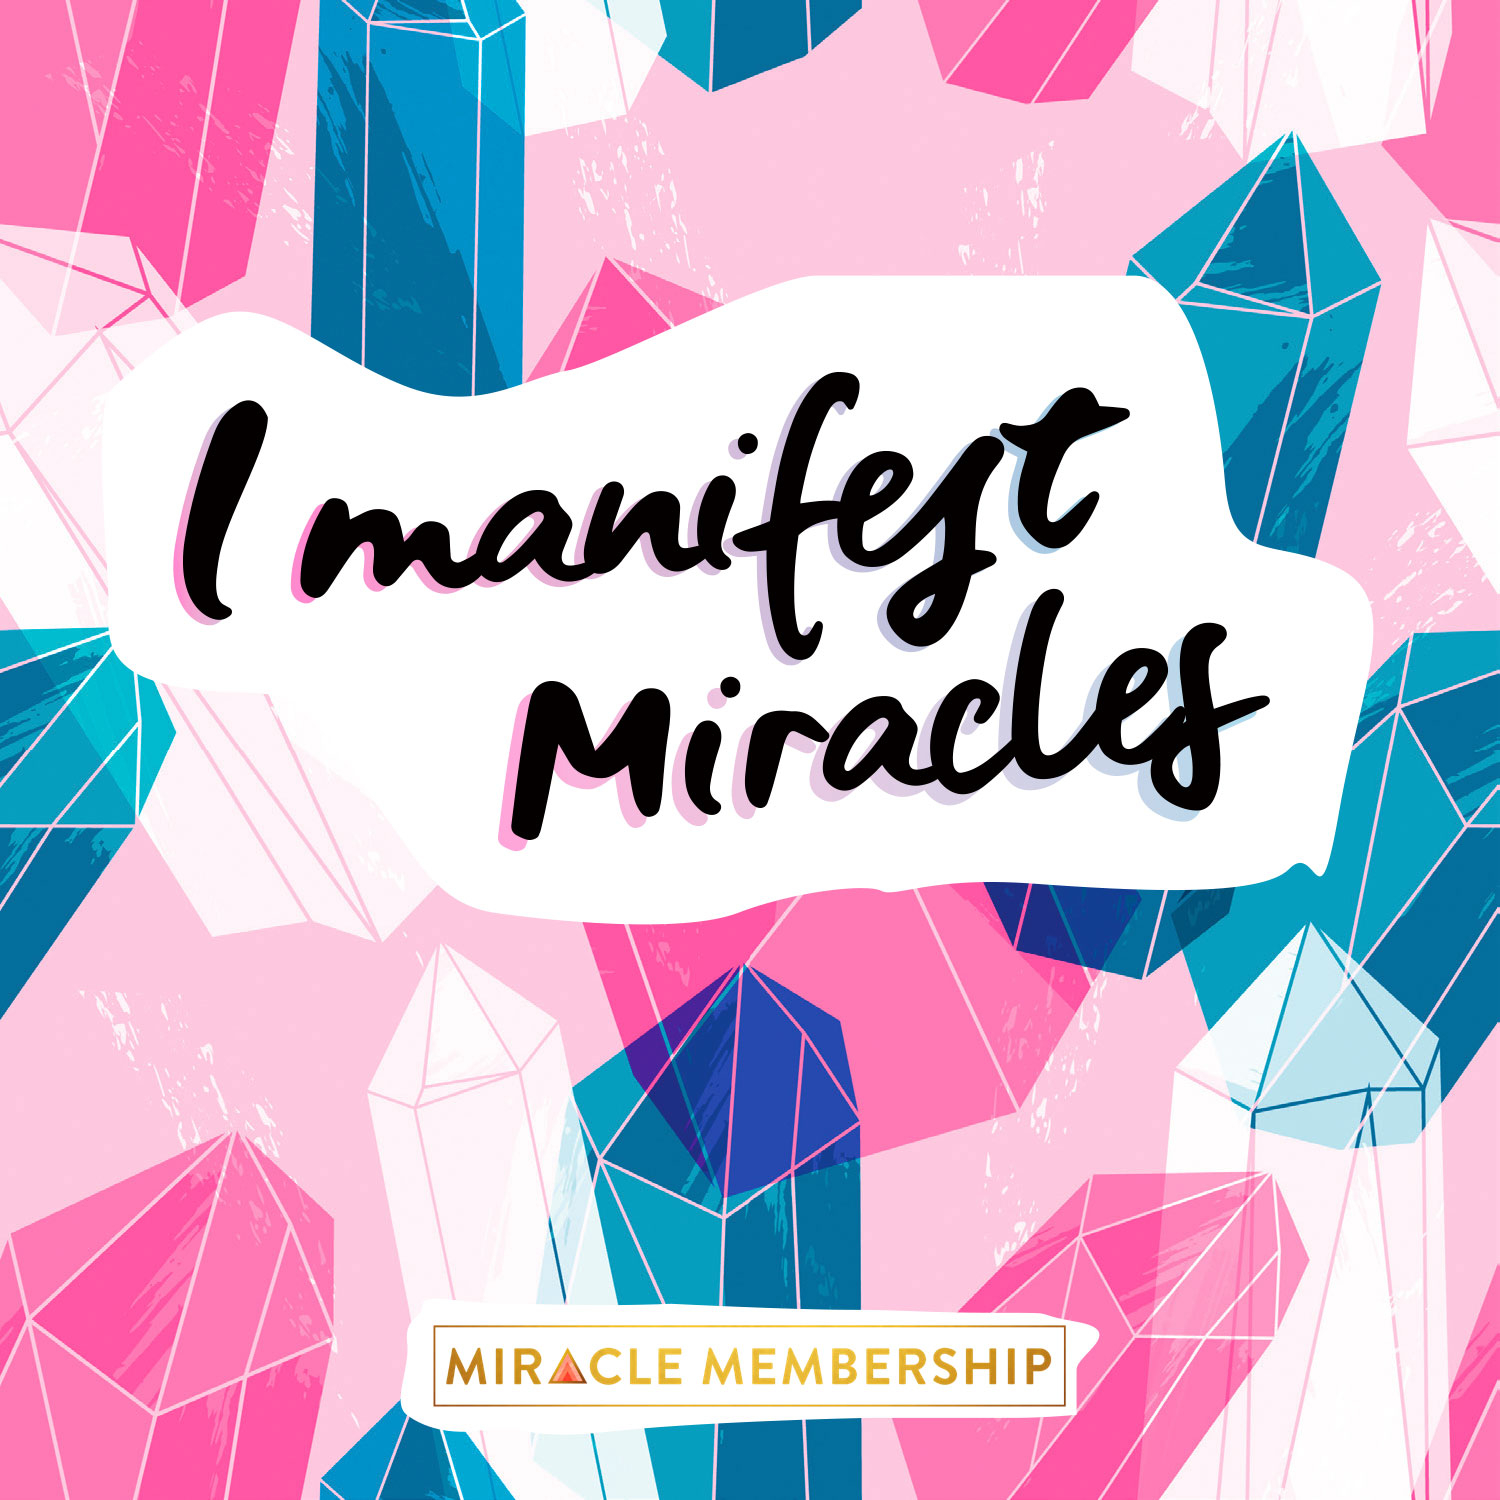 I manifest miracles | Miracle Membership mantra art for July 2019